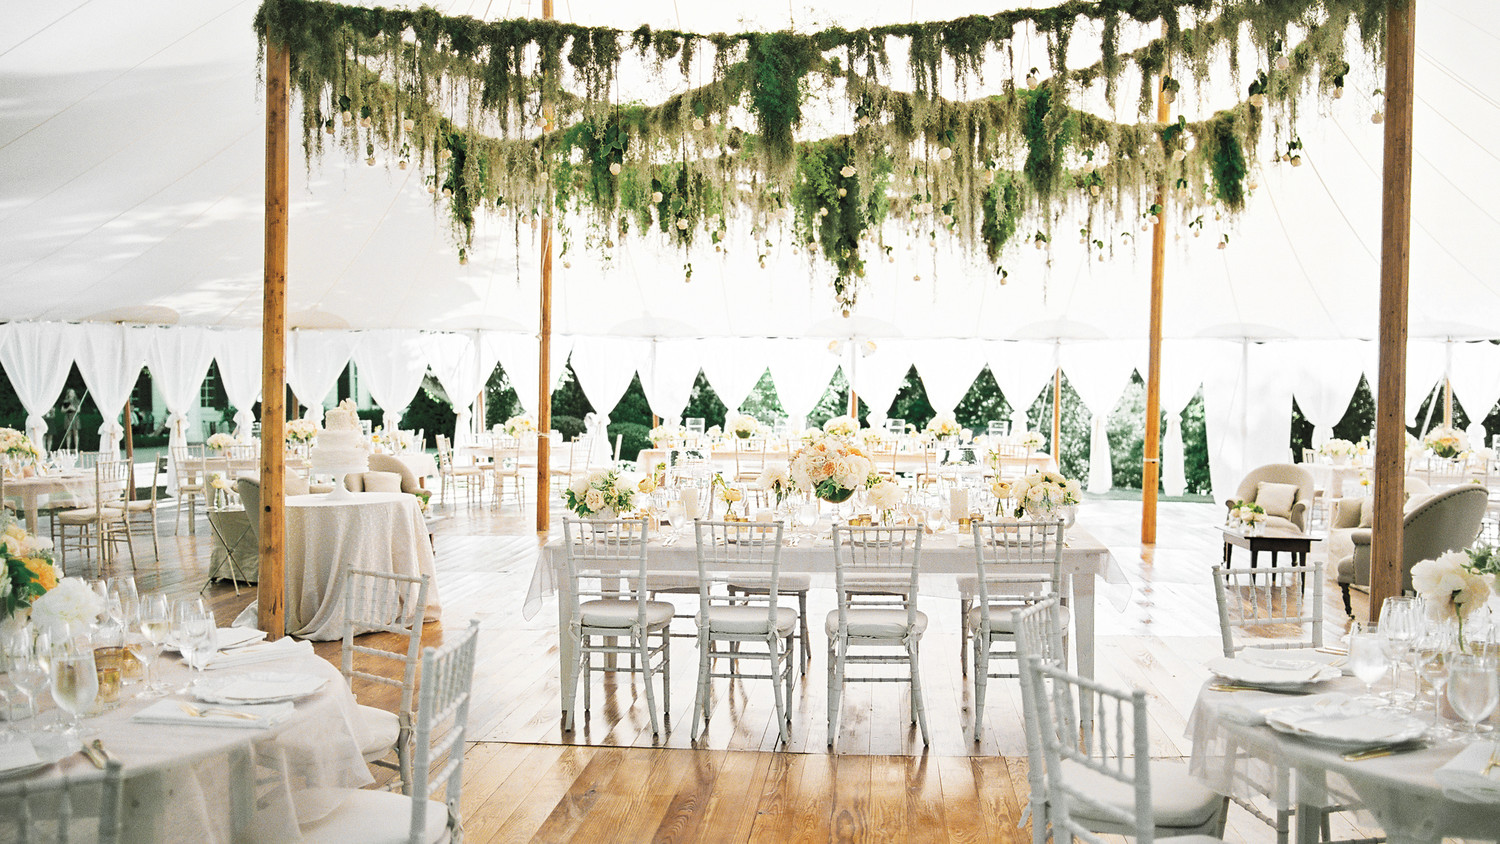 28 tent decorating ideas that will upgrade your wedding for At home wedding decoration ideas